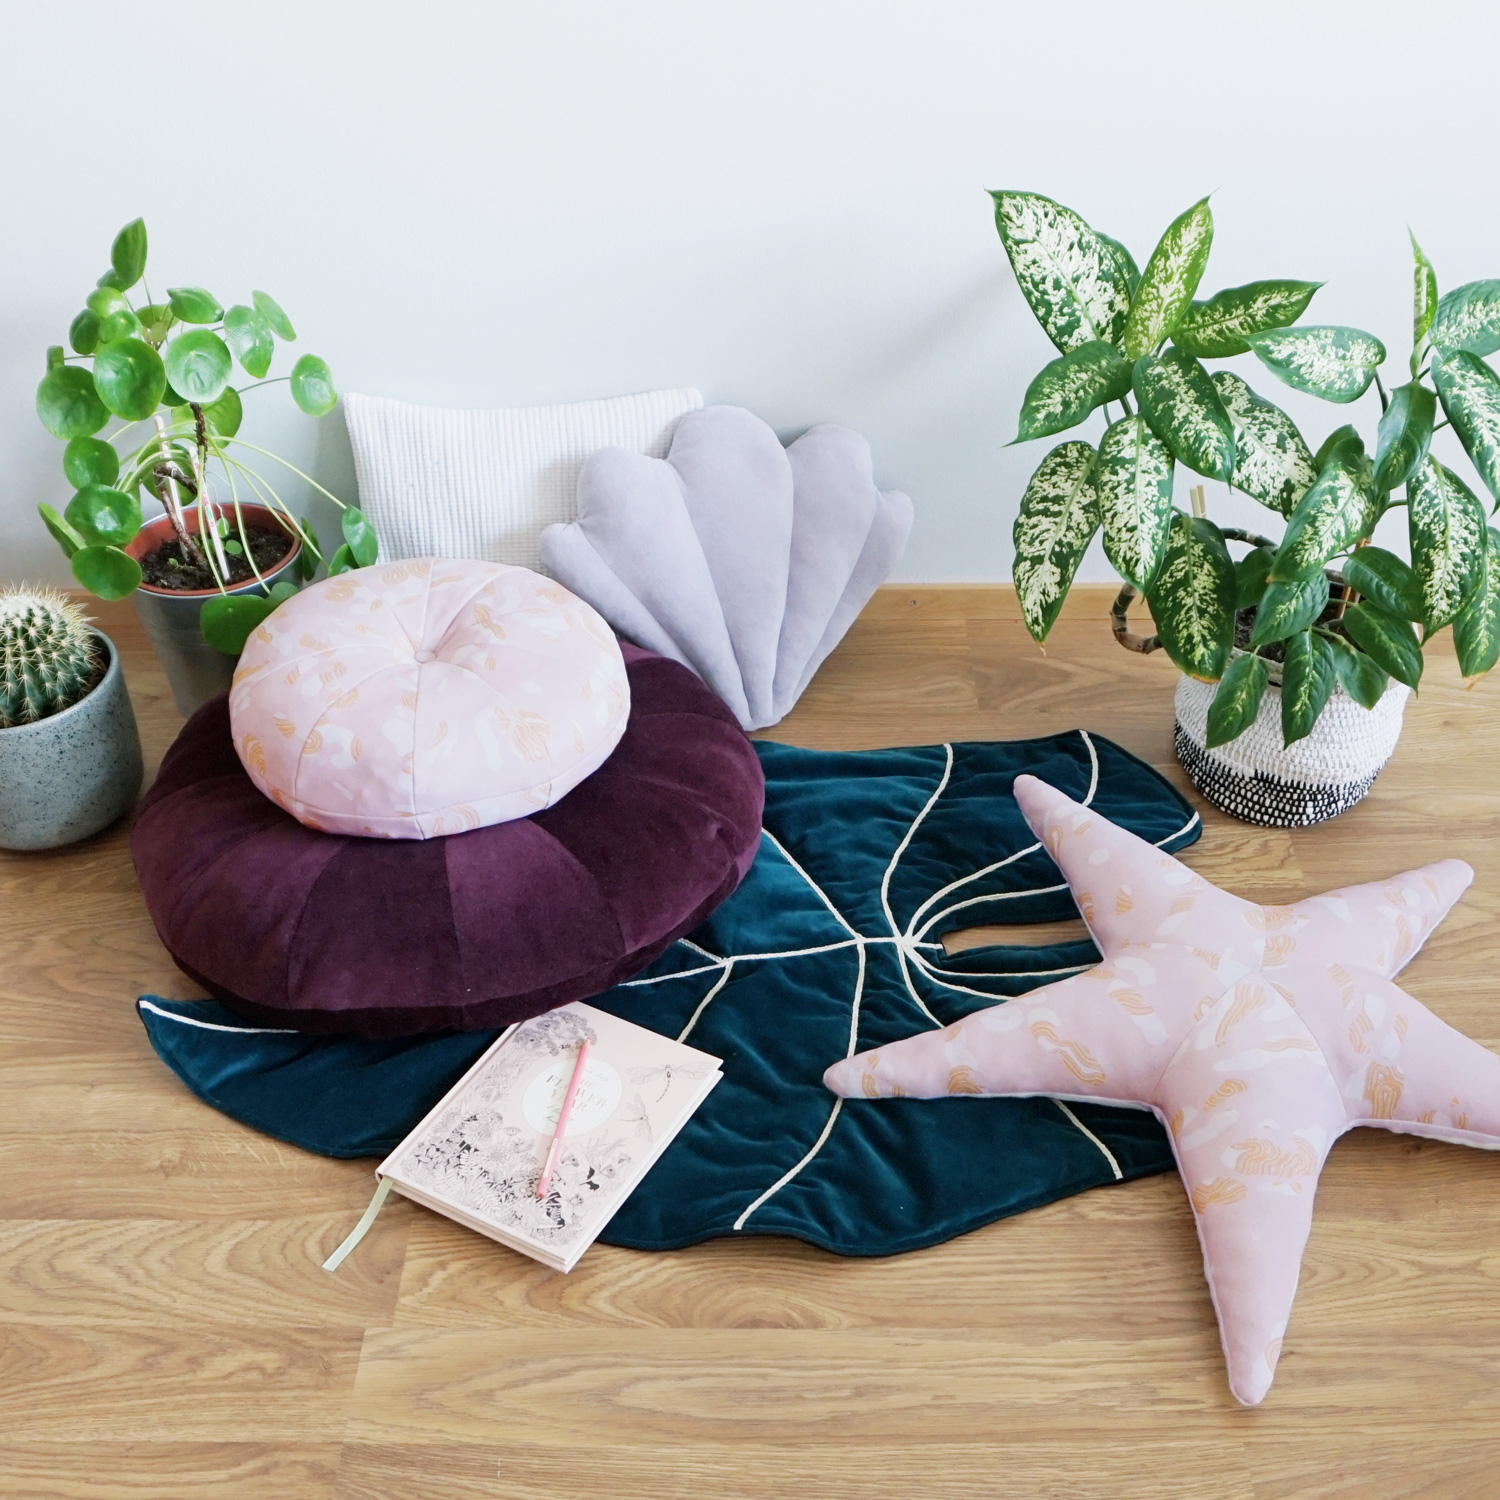 A small and large circular pillow with a button accent to use on the floor or as an accent pillow.